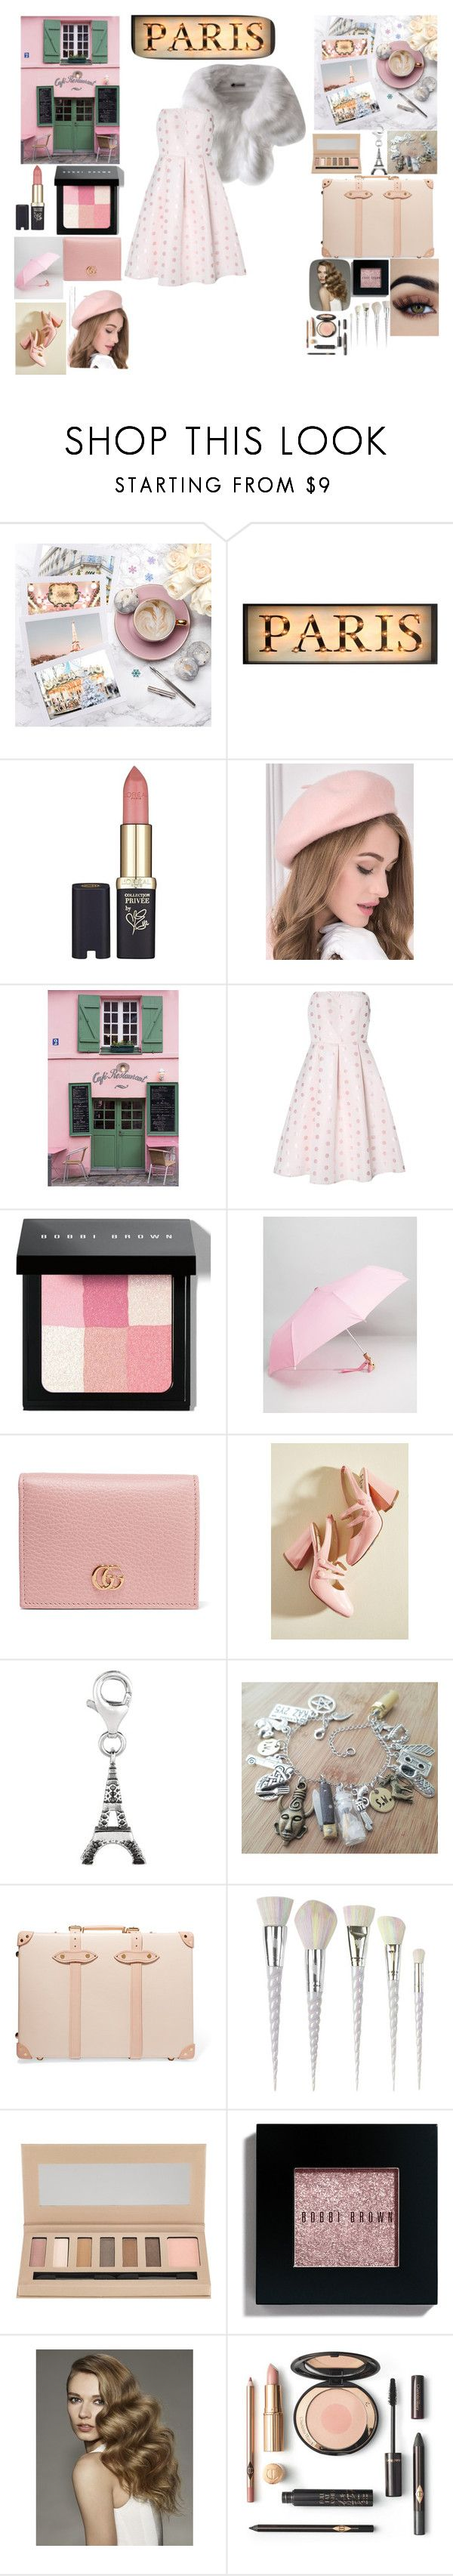 """Paris"" by melissagraham1407 ❤ liked on Polyvore featuring L'Oréal Paris, La Maison, True Decadence, Bobbi Brown Cosmetics, Original Duckhead, Gucci, Banned, Globe-Trotter, Unicorn Lashes and Barry M"